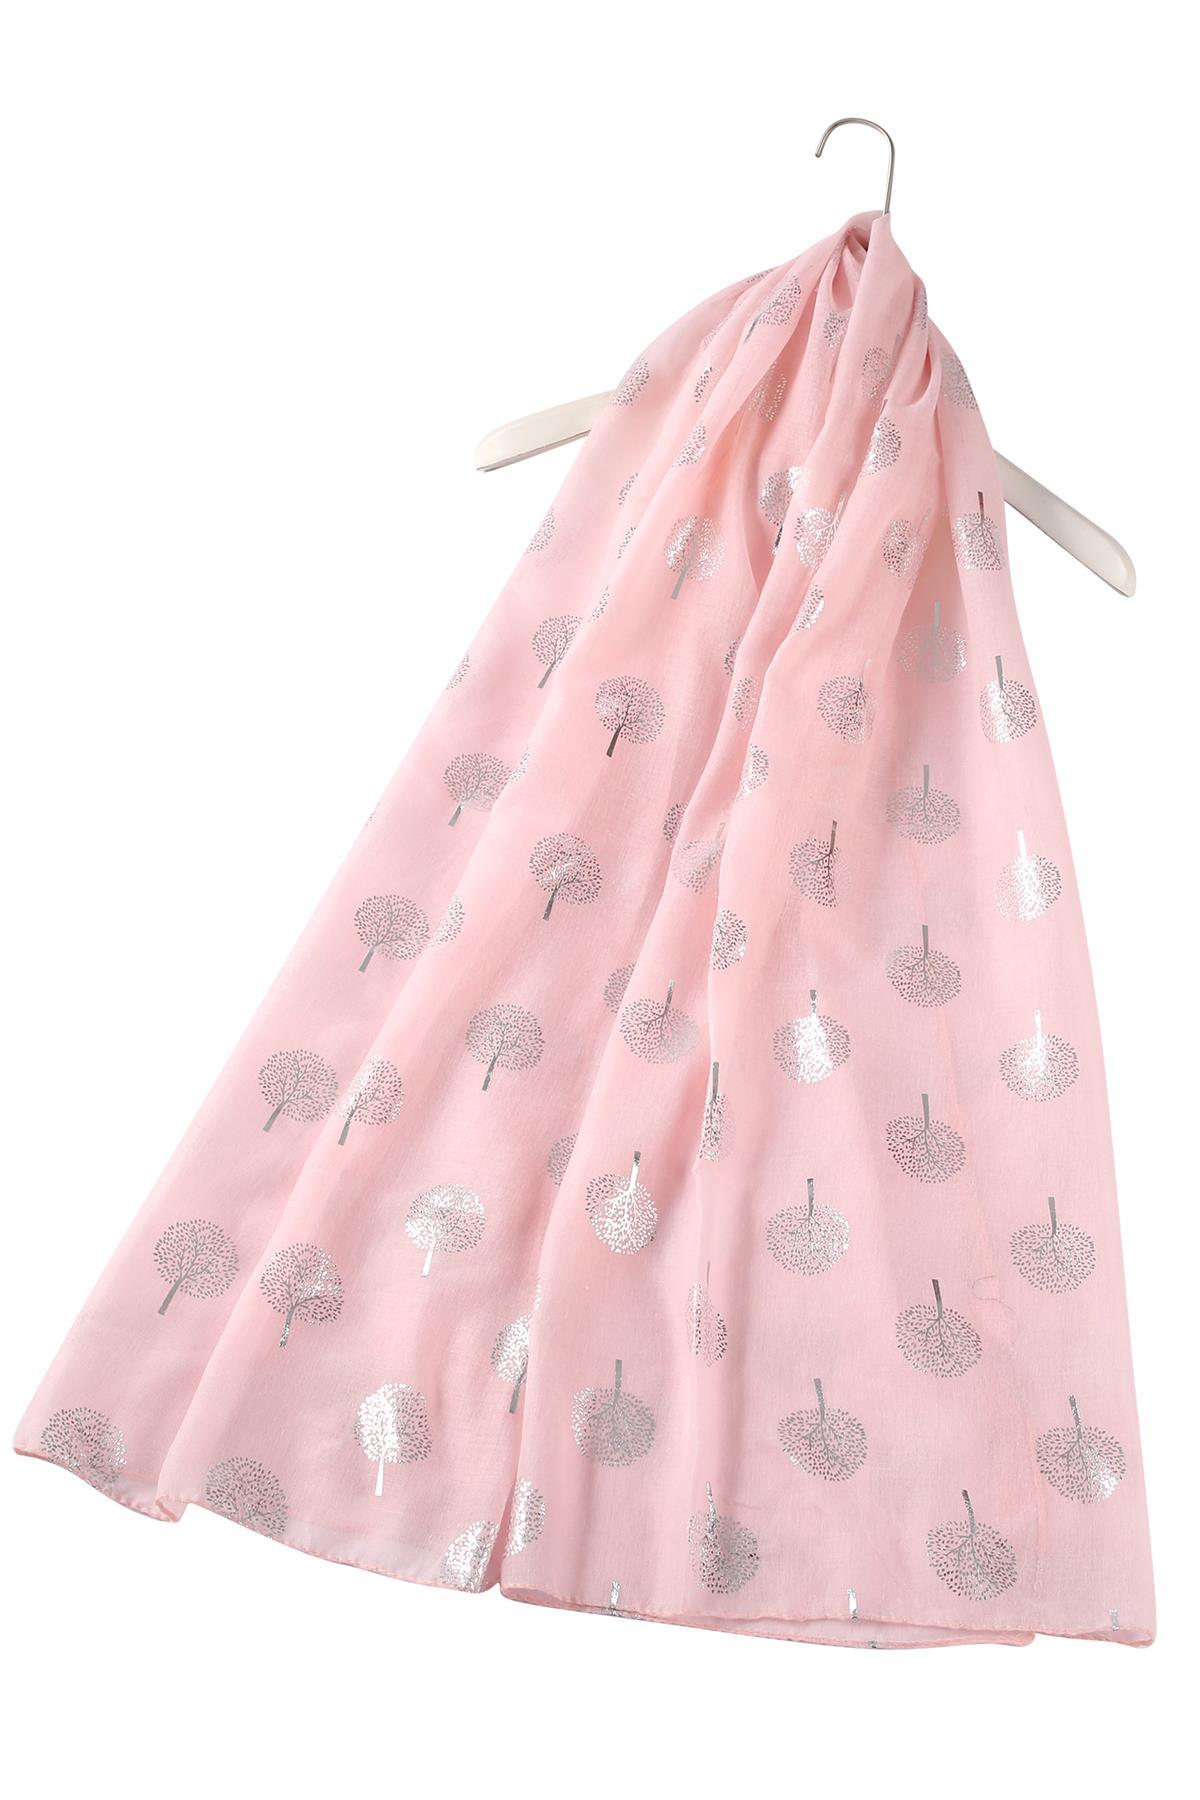 Silver Tree Print Pink Scarf